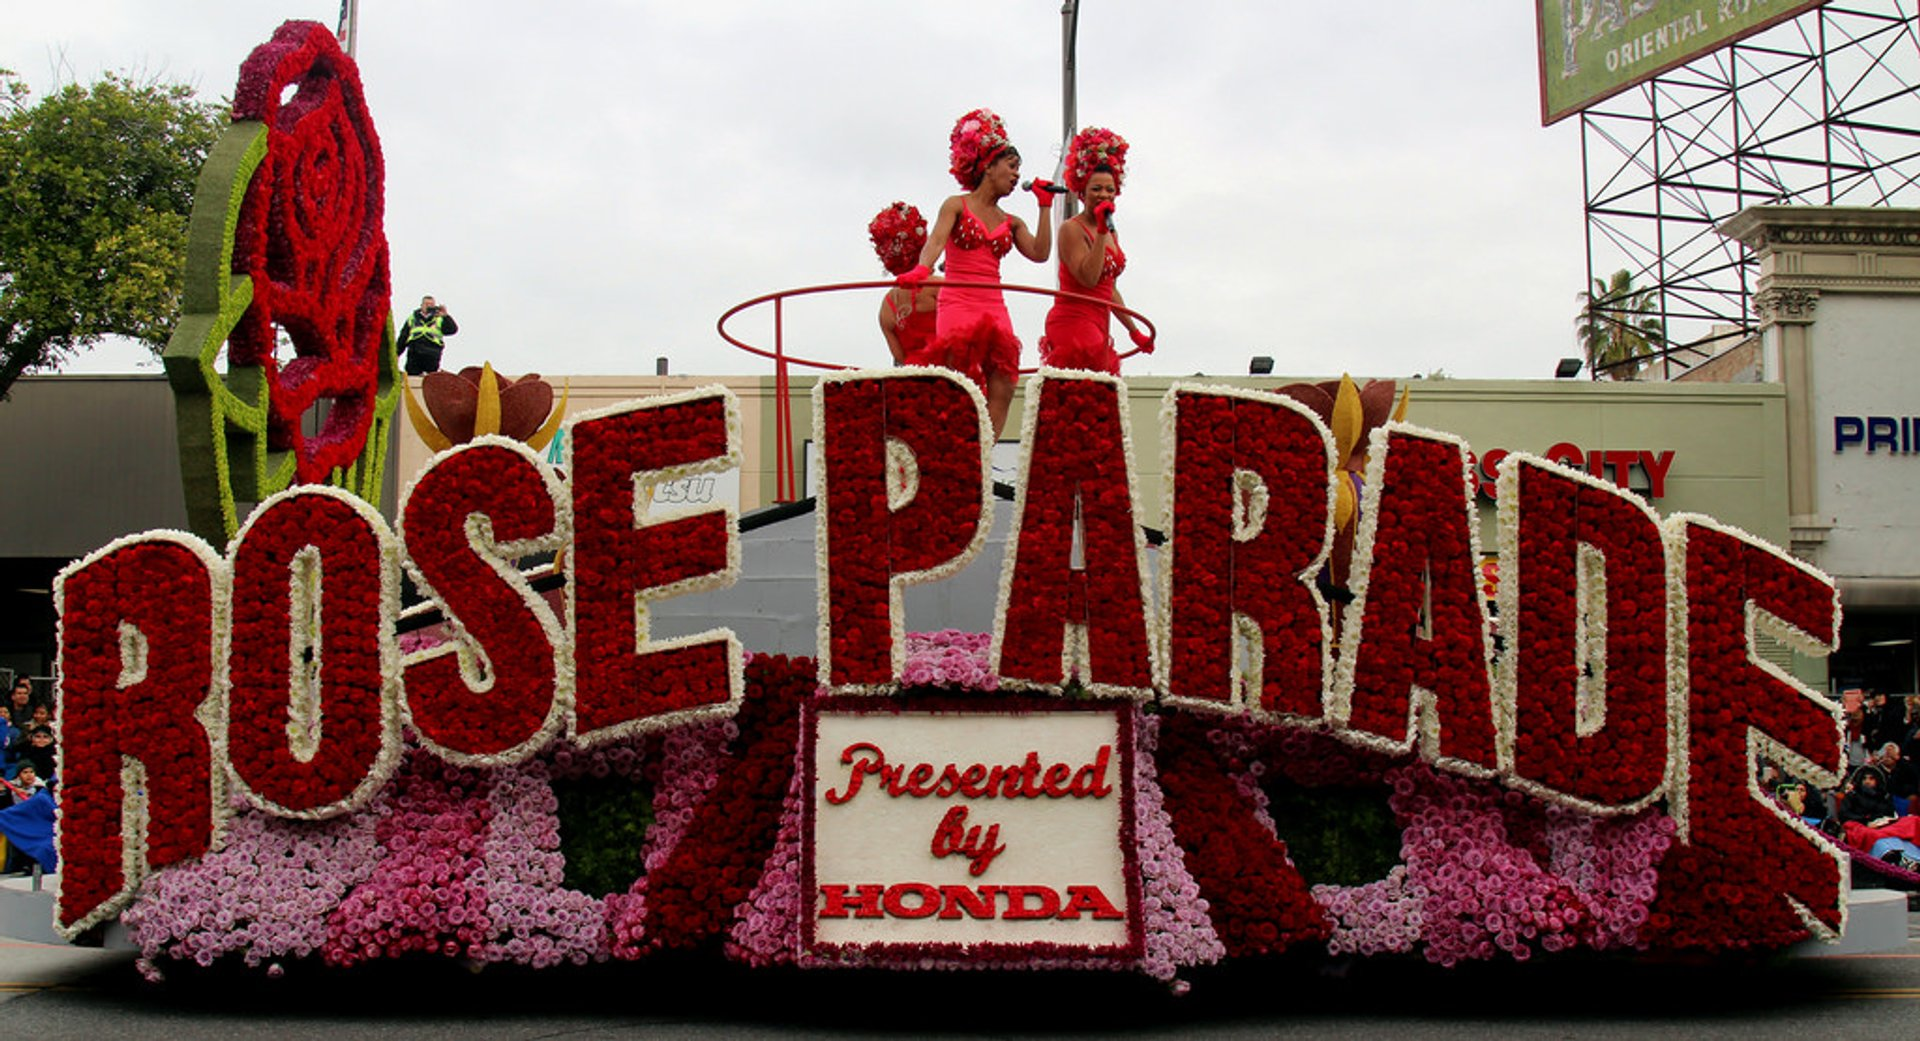 Best time to see Rose Parade (Tournament of Roses) in Los Angeles 2020